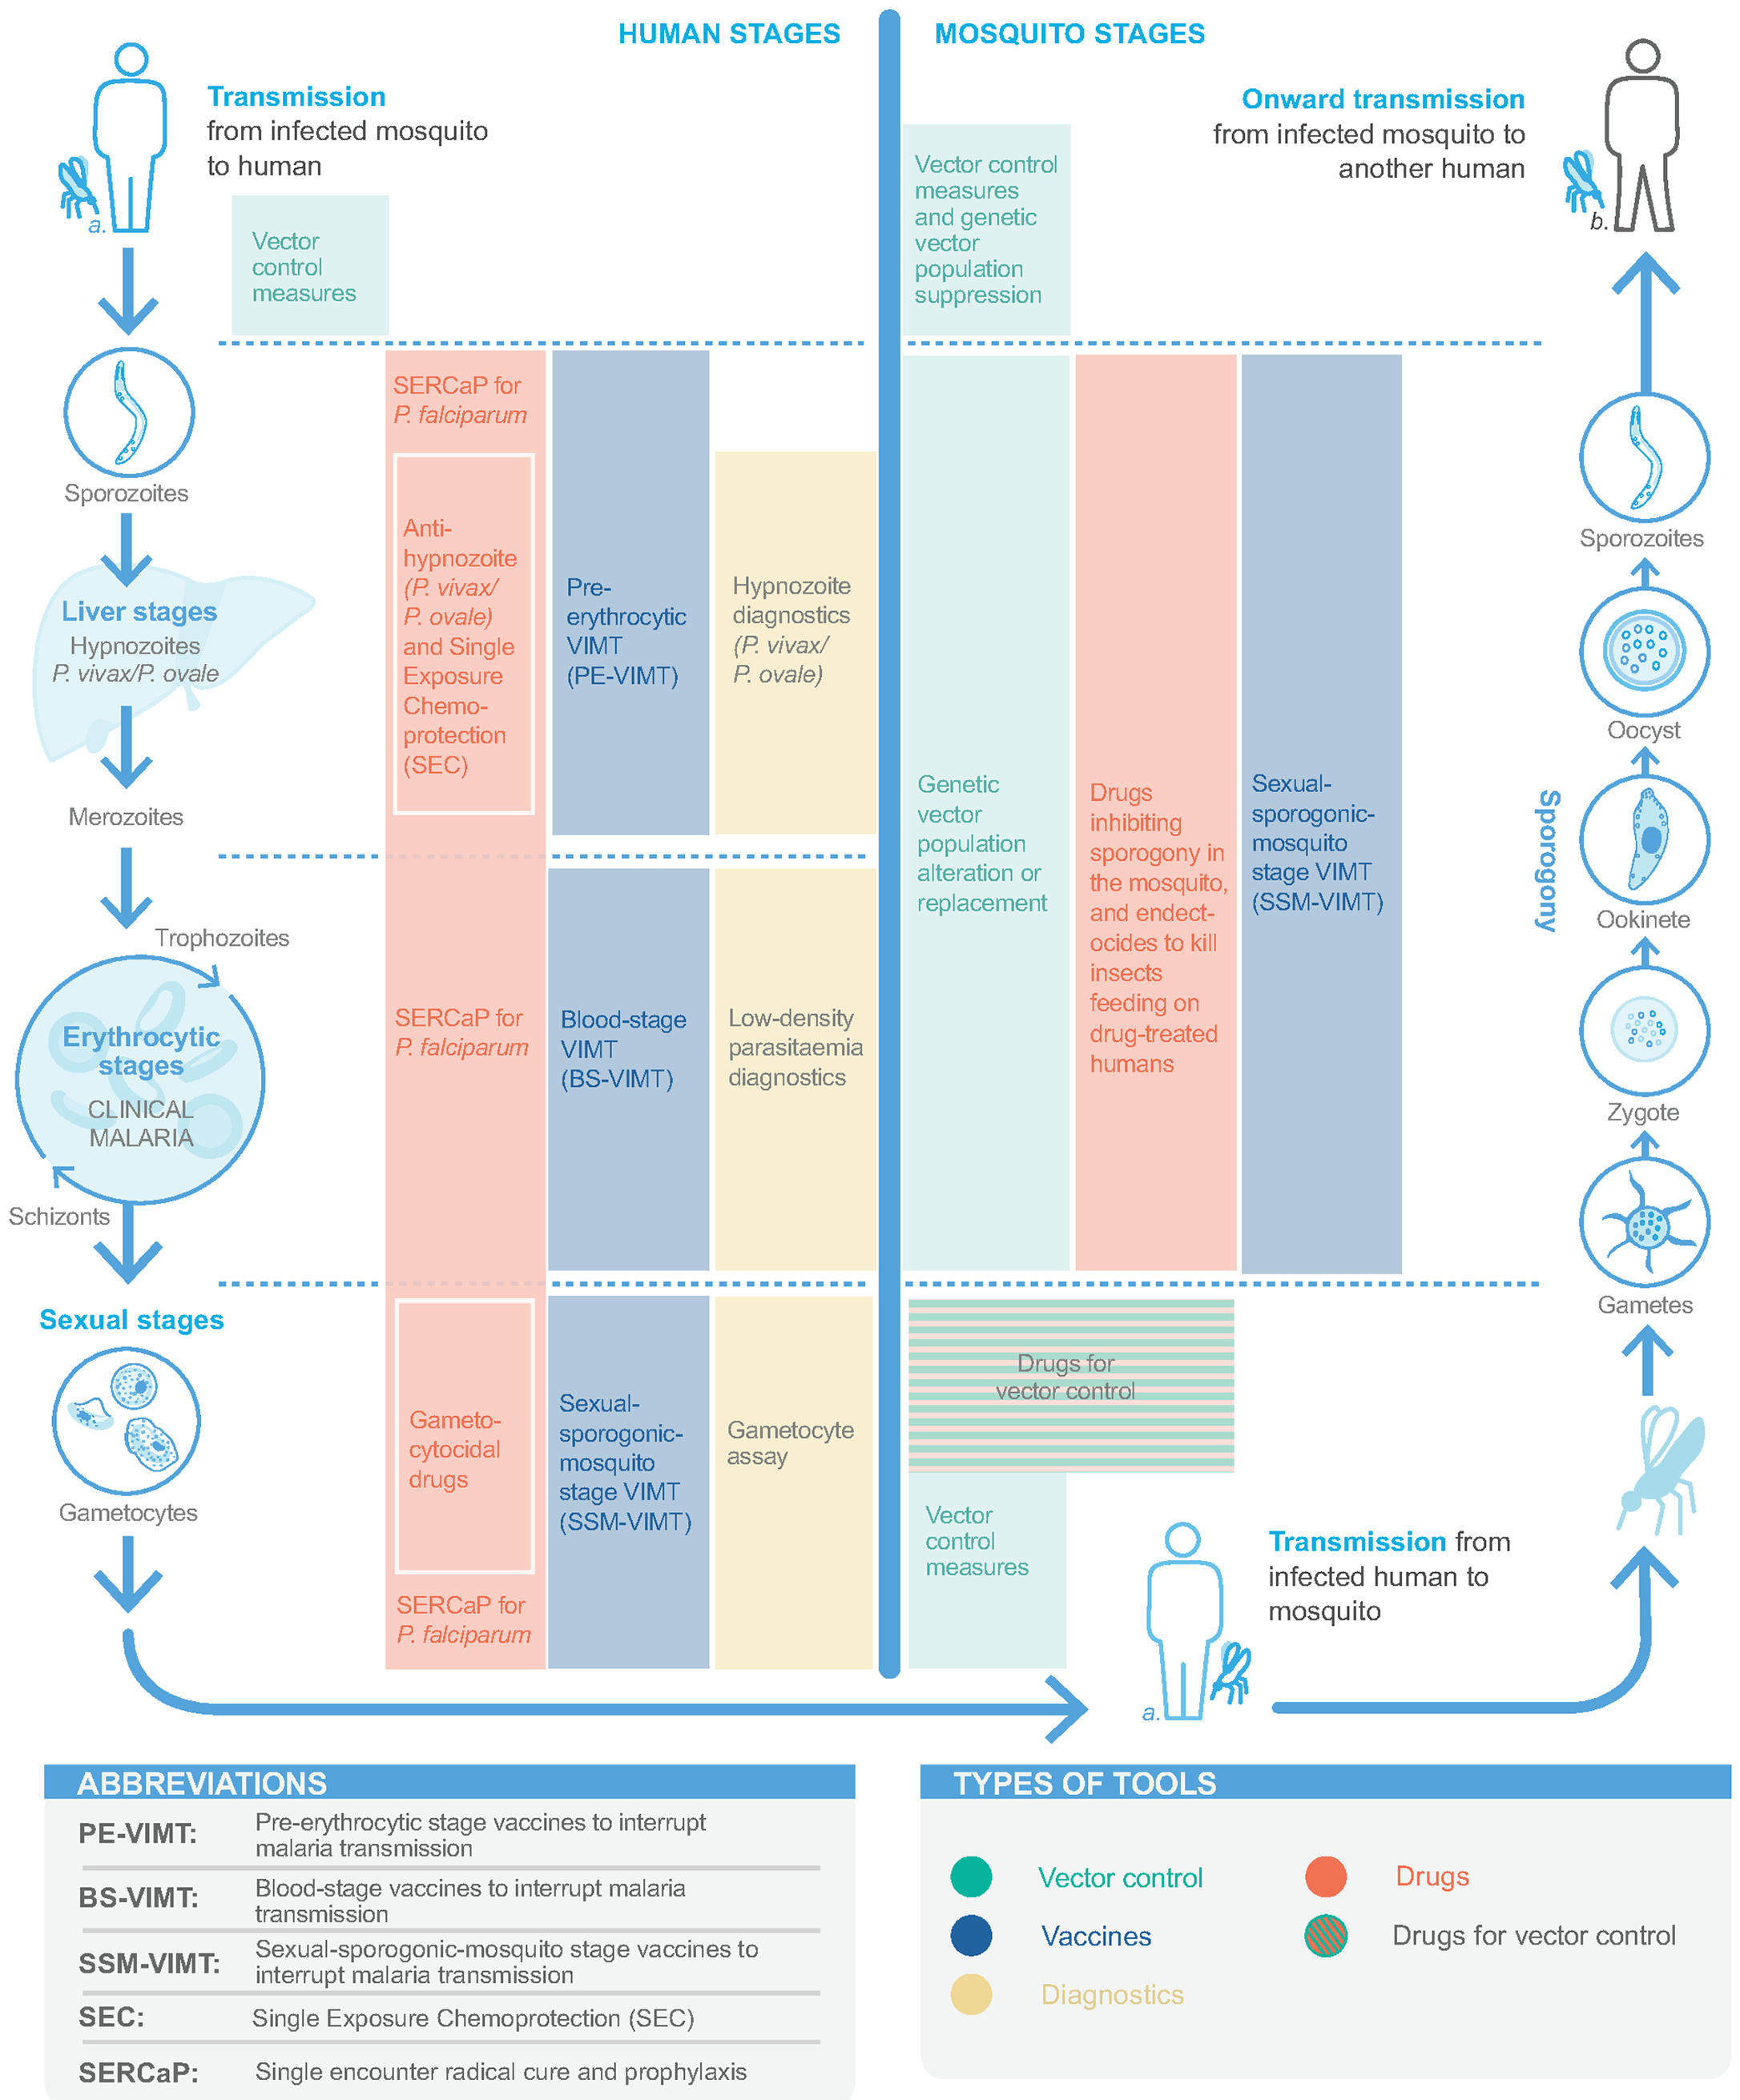 Tools for detecting and interrupting malaria transmission and their action in the malaria transmission cycle.